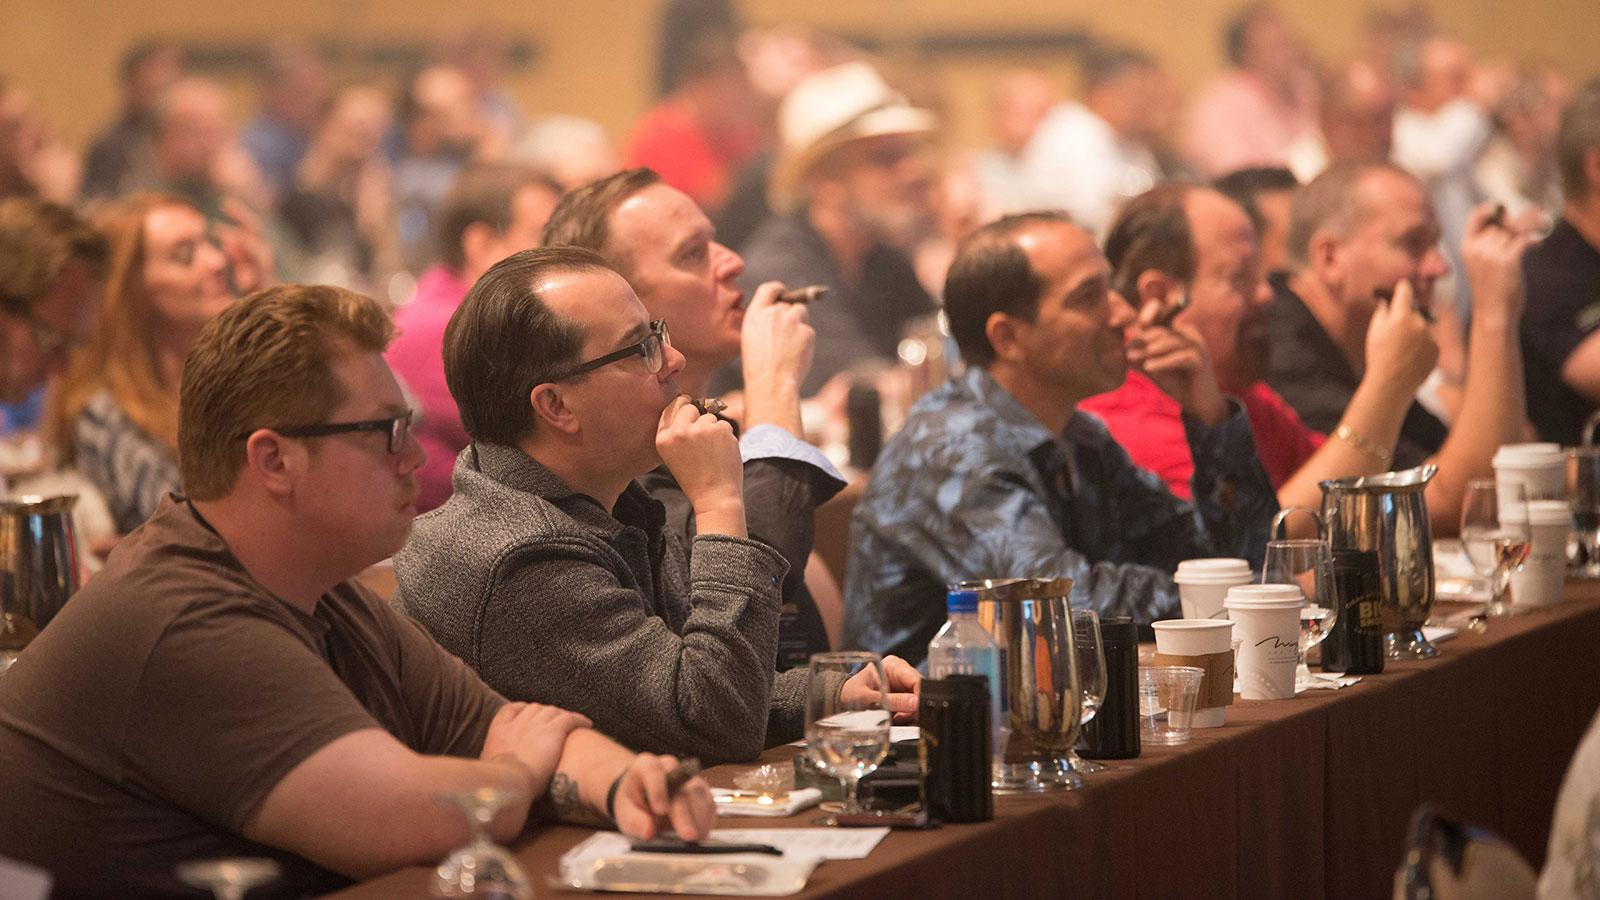 The educational seminar revolved around four key maxims: band recognition, understanding packaging, understanding Cuban Limitada releases, and knowing the base prices of common Cubans around the world.